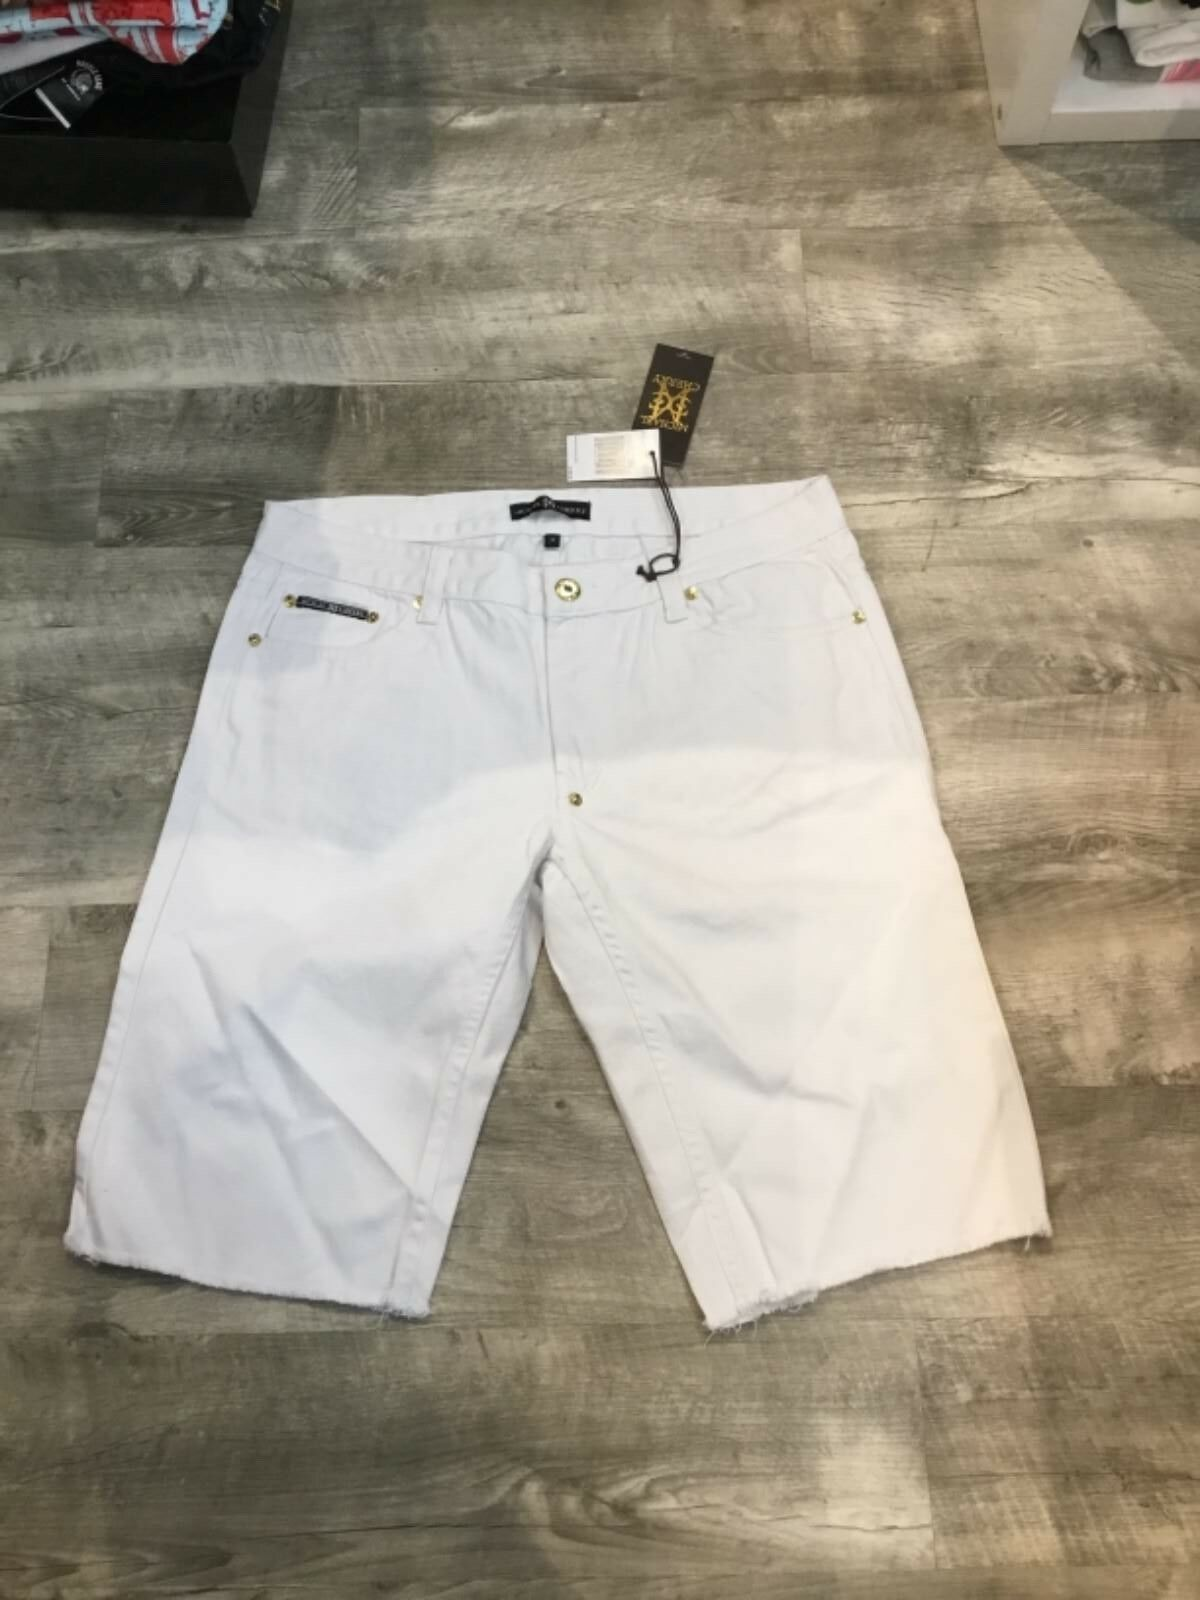 MICHEAL CHERRY DENIM WHITE SHORTS SIZE 40 NEW RETAIL 109.00